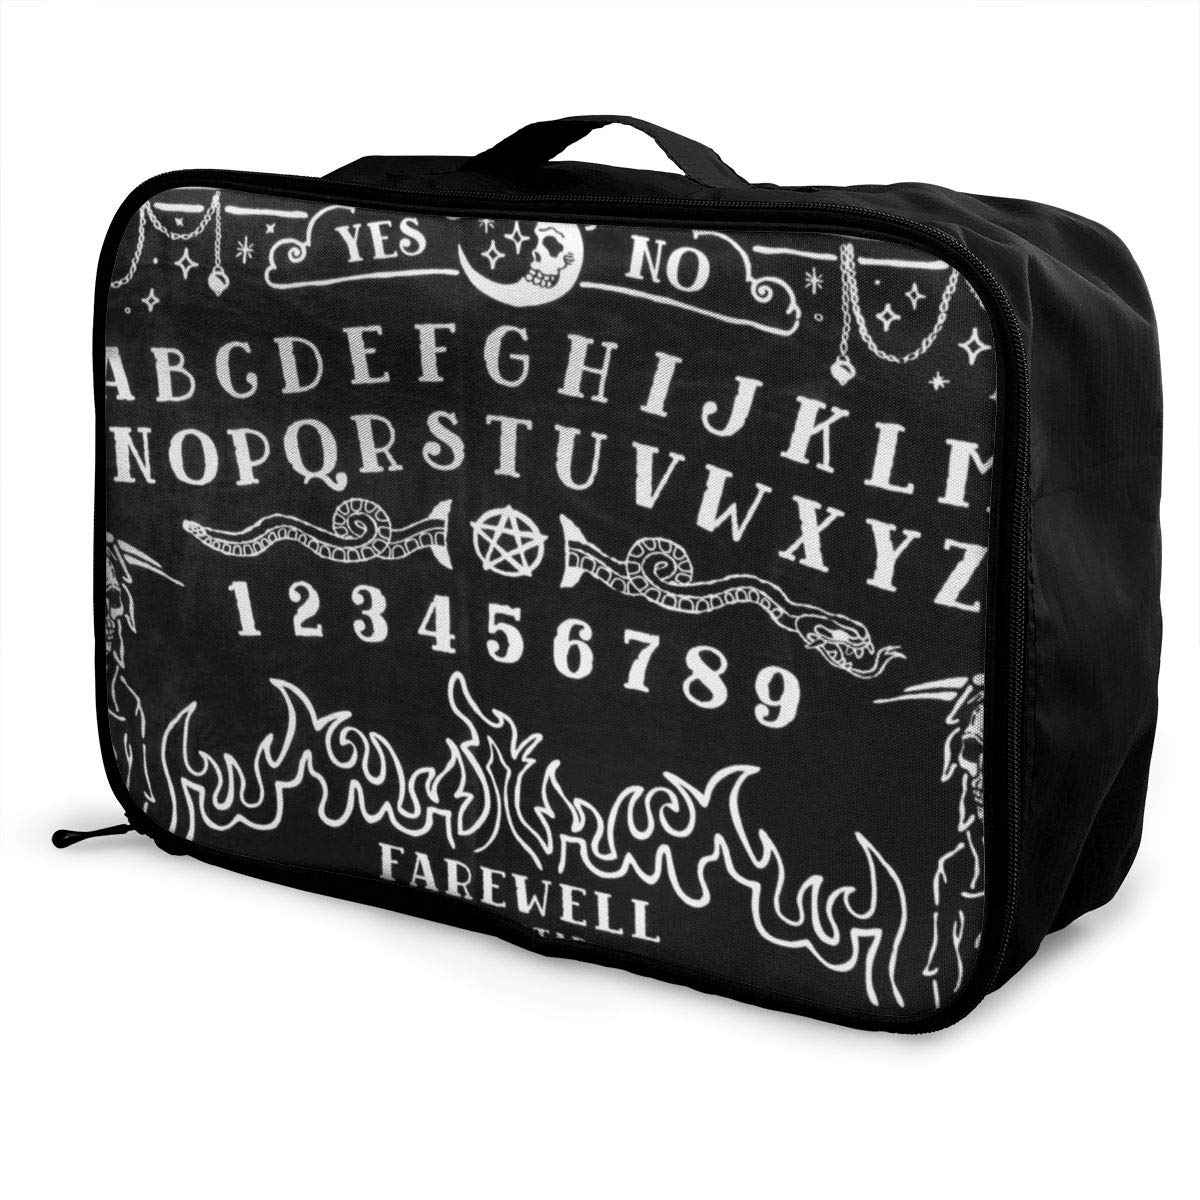 Witch Board Black Gothic Skull Travel Lightweight Waterproof Foldable Storage Portable Luggage Duffle Tote Bag Large Capacity In Trolley Handle Bags 6x11x15 Inch